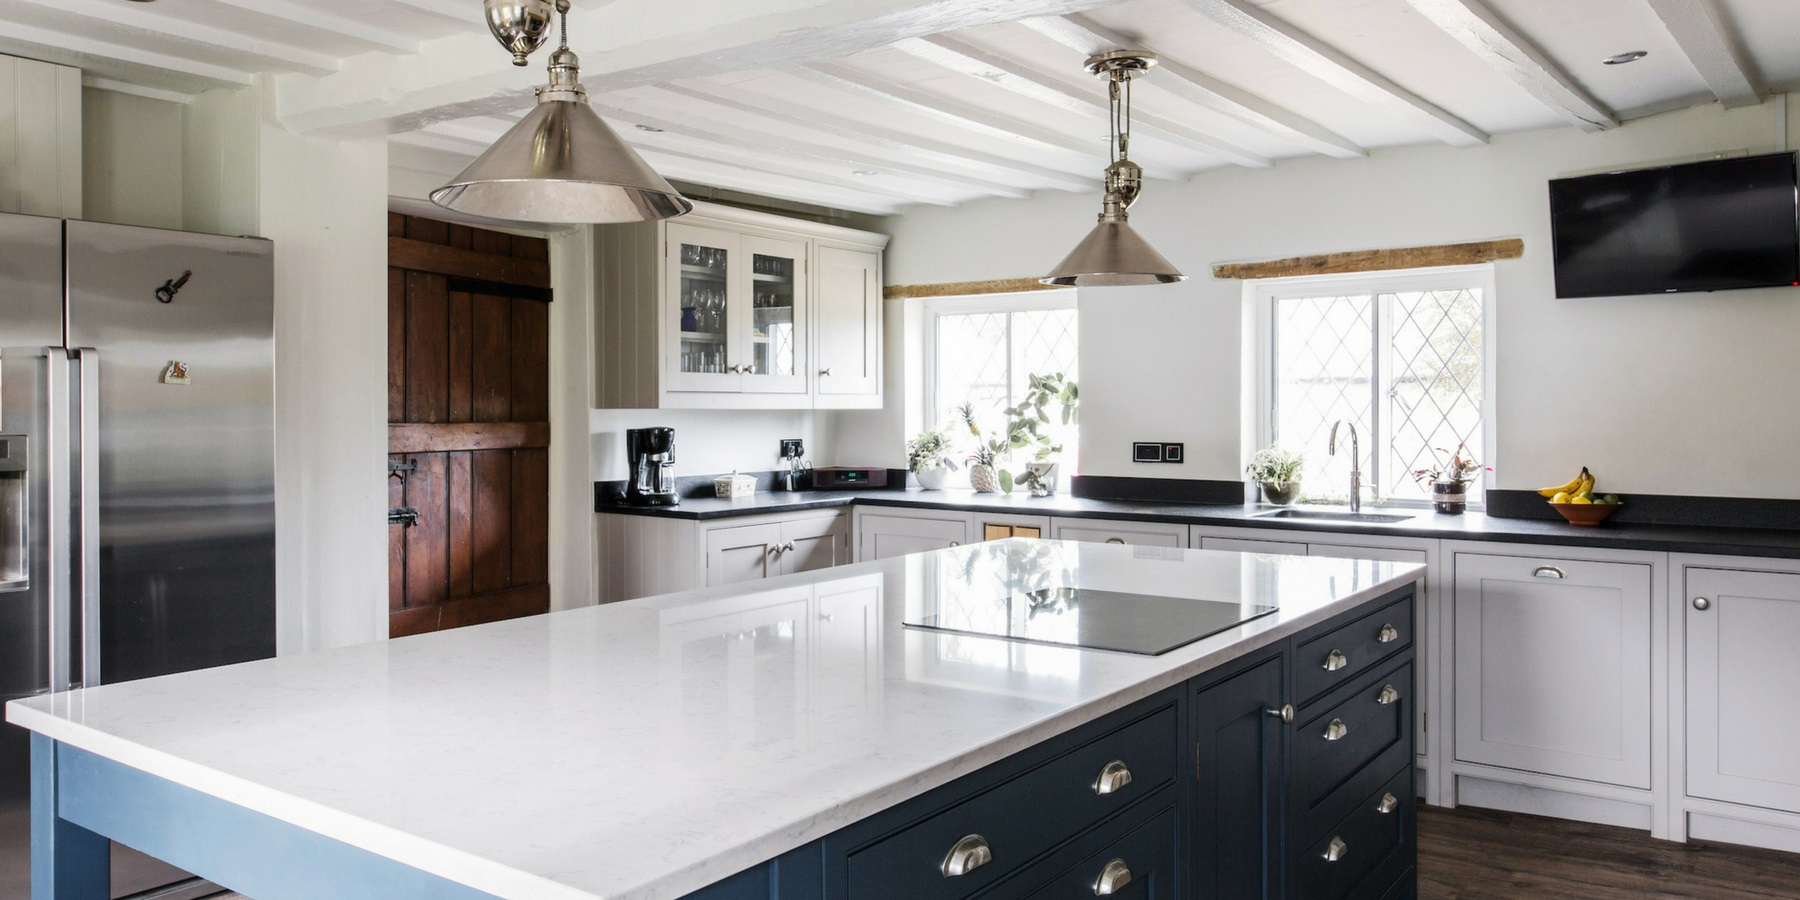 burlanes bespoke, handmade kitchen design -